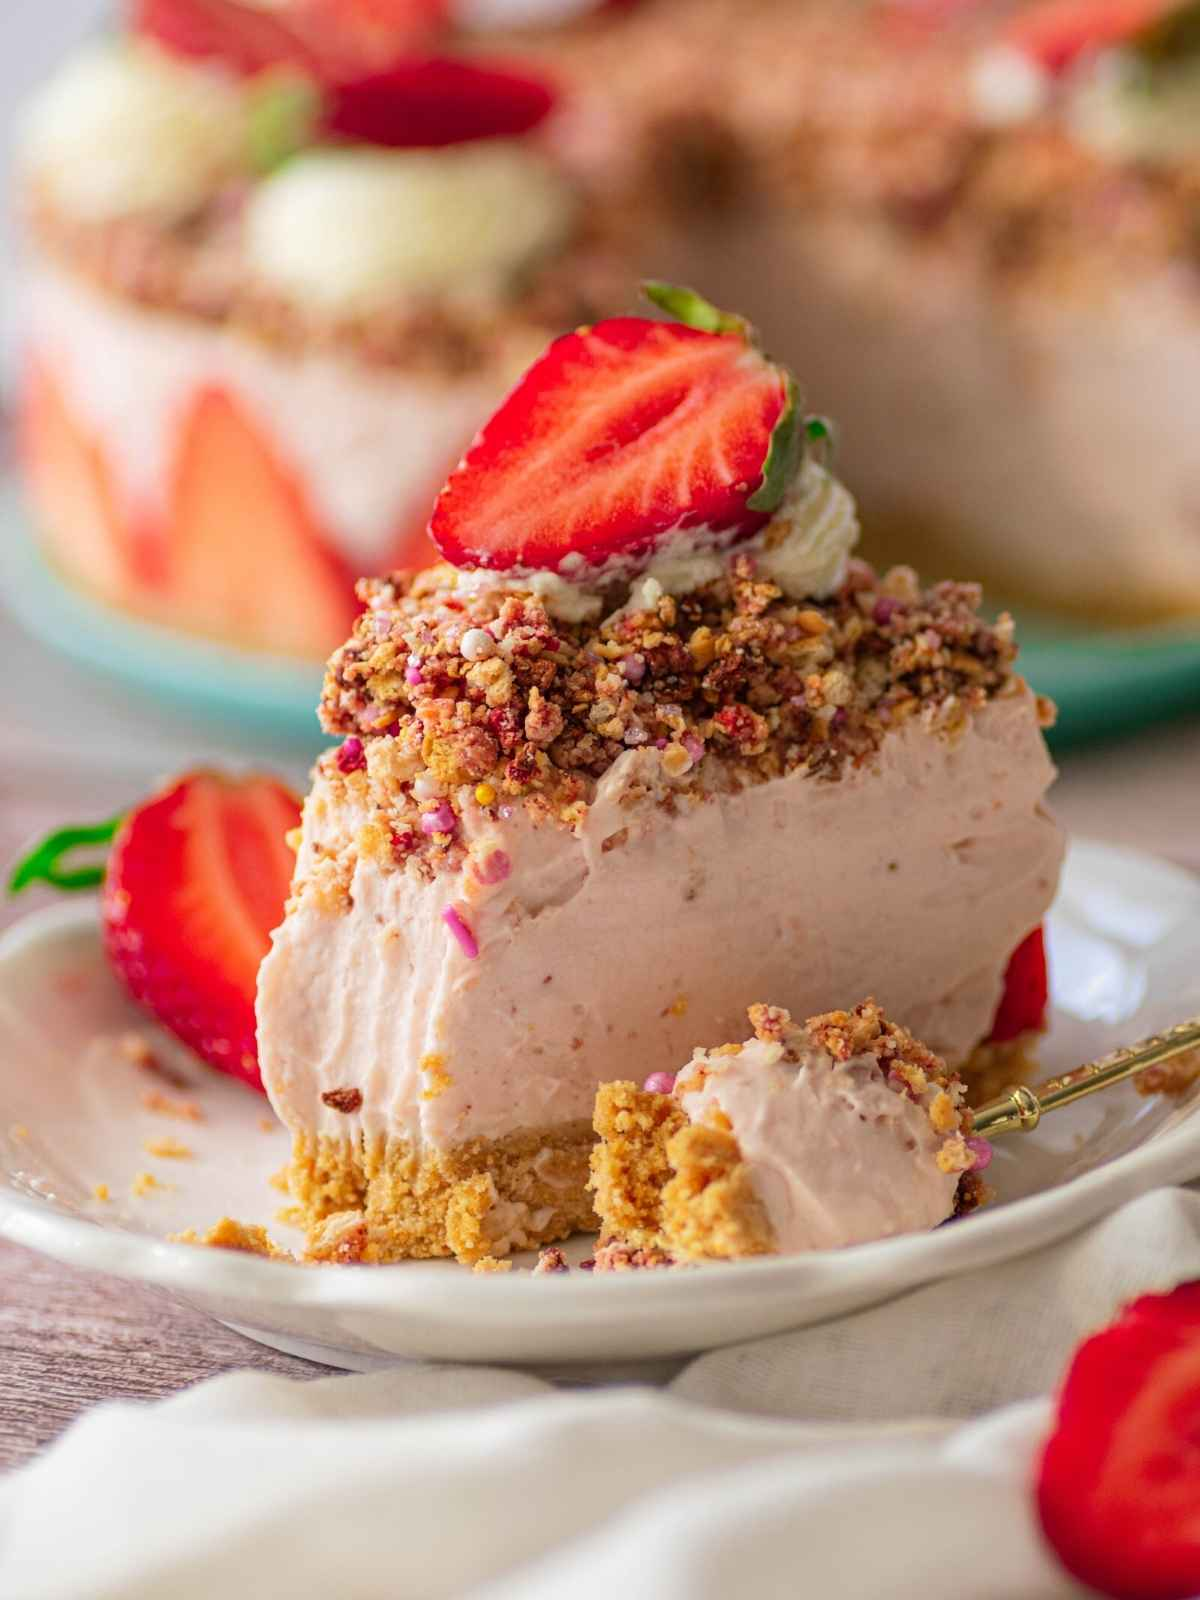 Closeup of slice of strawberry crunch cheesecake on white plate